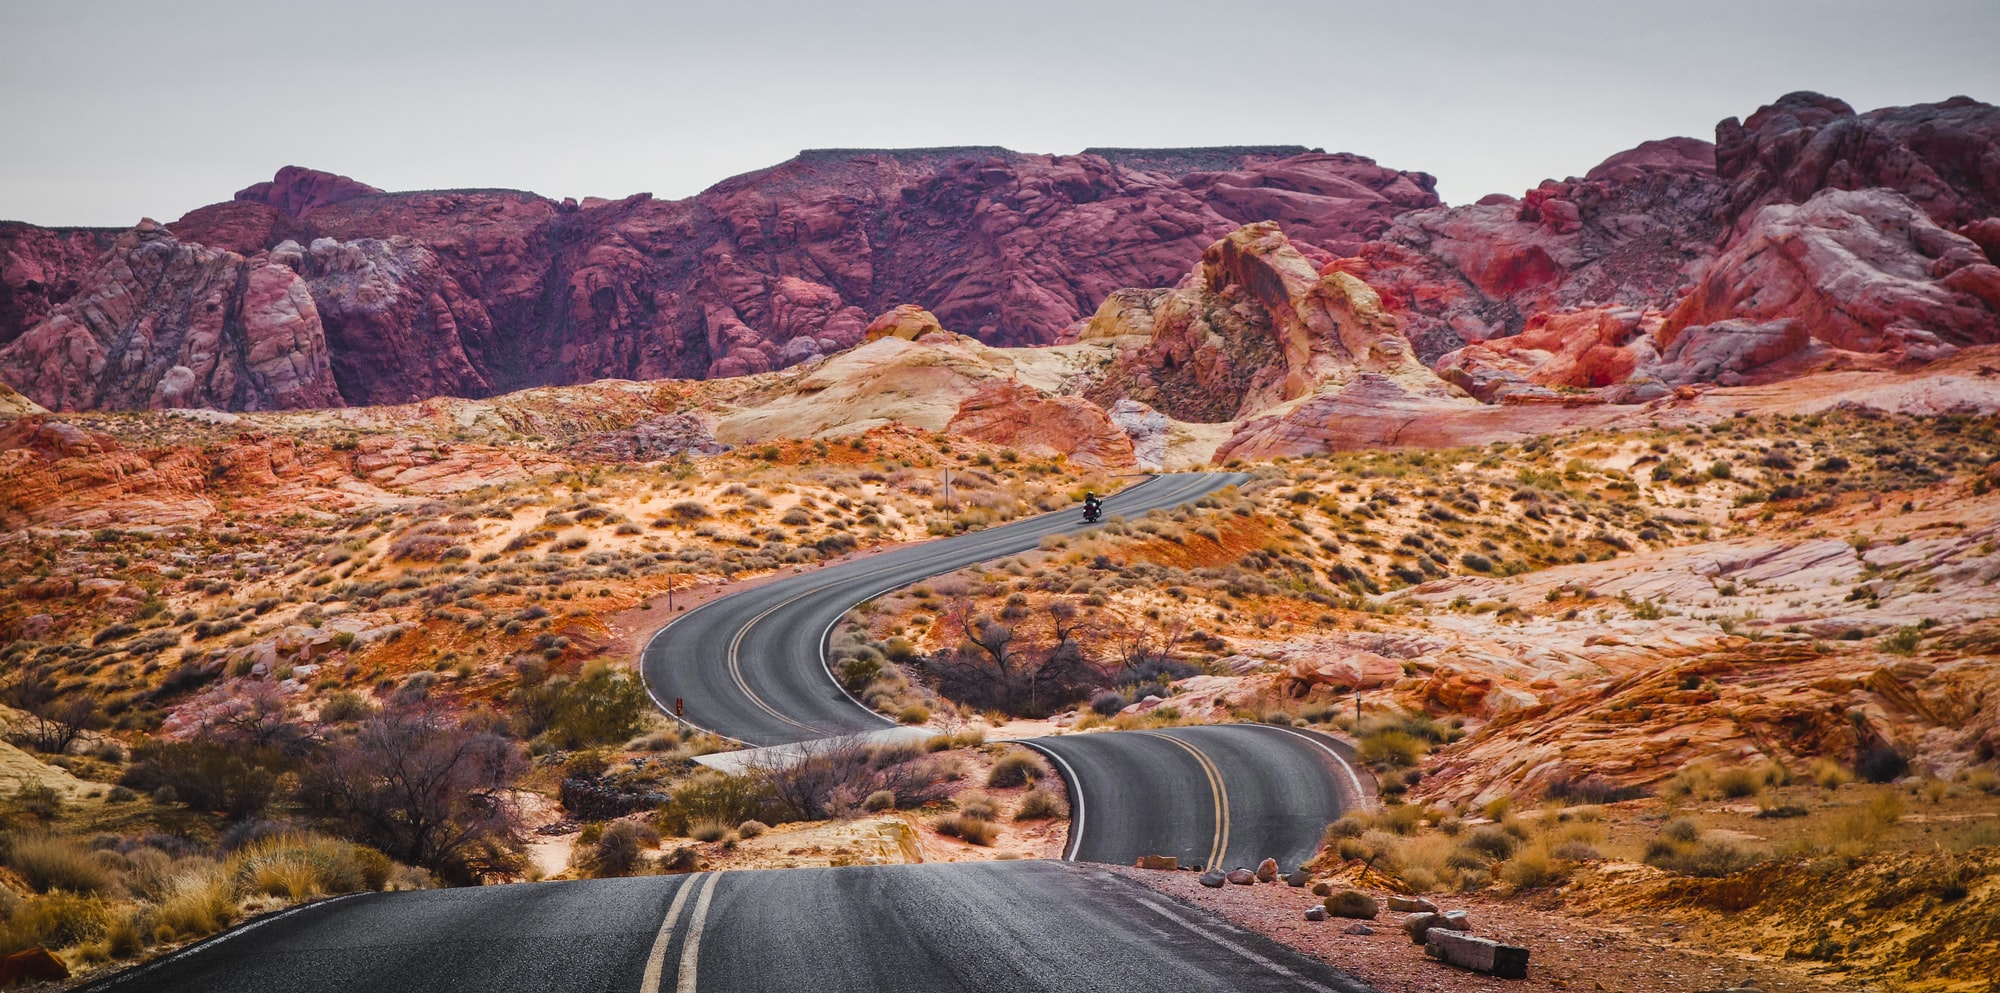 We left Las Vegas behind us and some hours later we entered the Valley of Fire State Park. Beautiful rocks with their soft colors. When the road made these beautiful curves we could not to drive a bit back and take this picture.